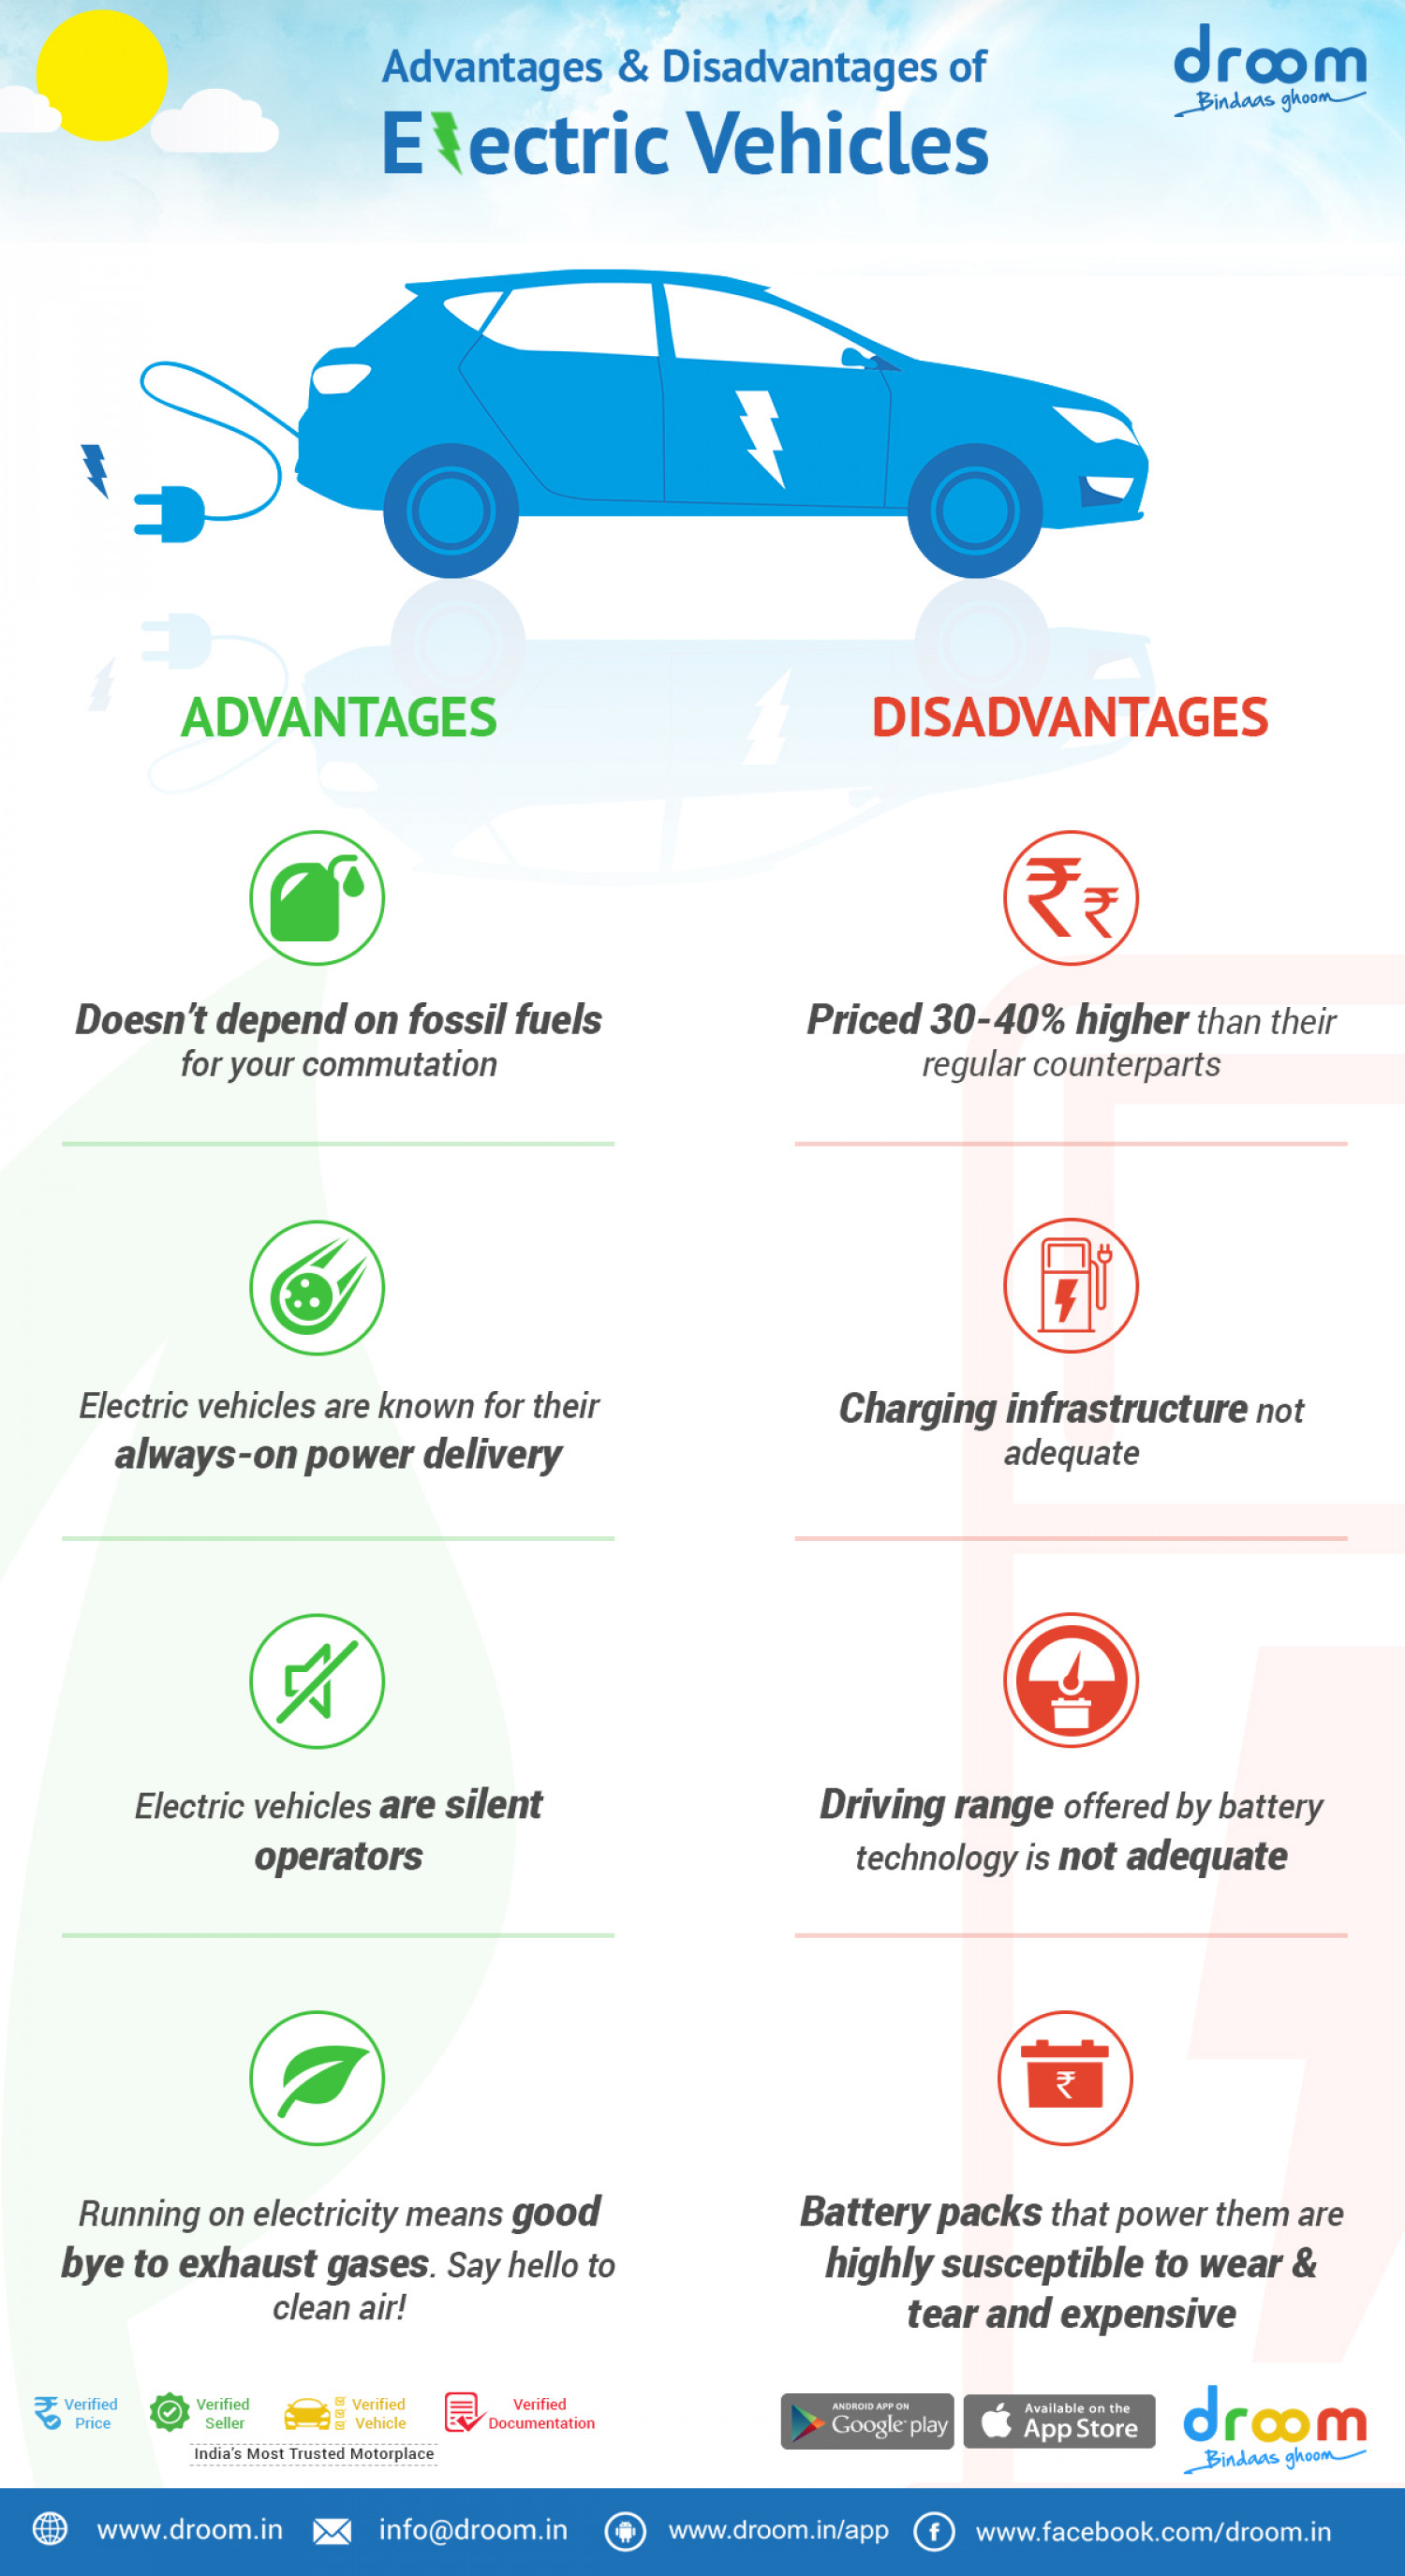 Advantages And Disadvantages Of Electric Vehicles Infographic